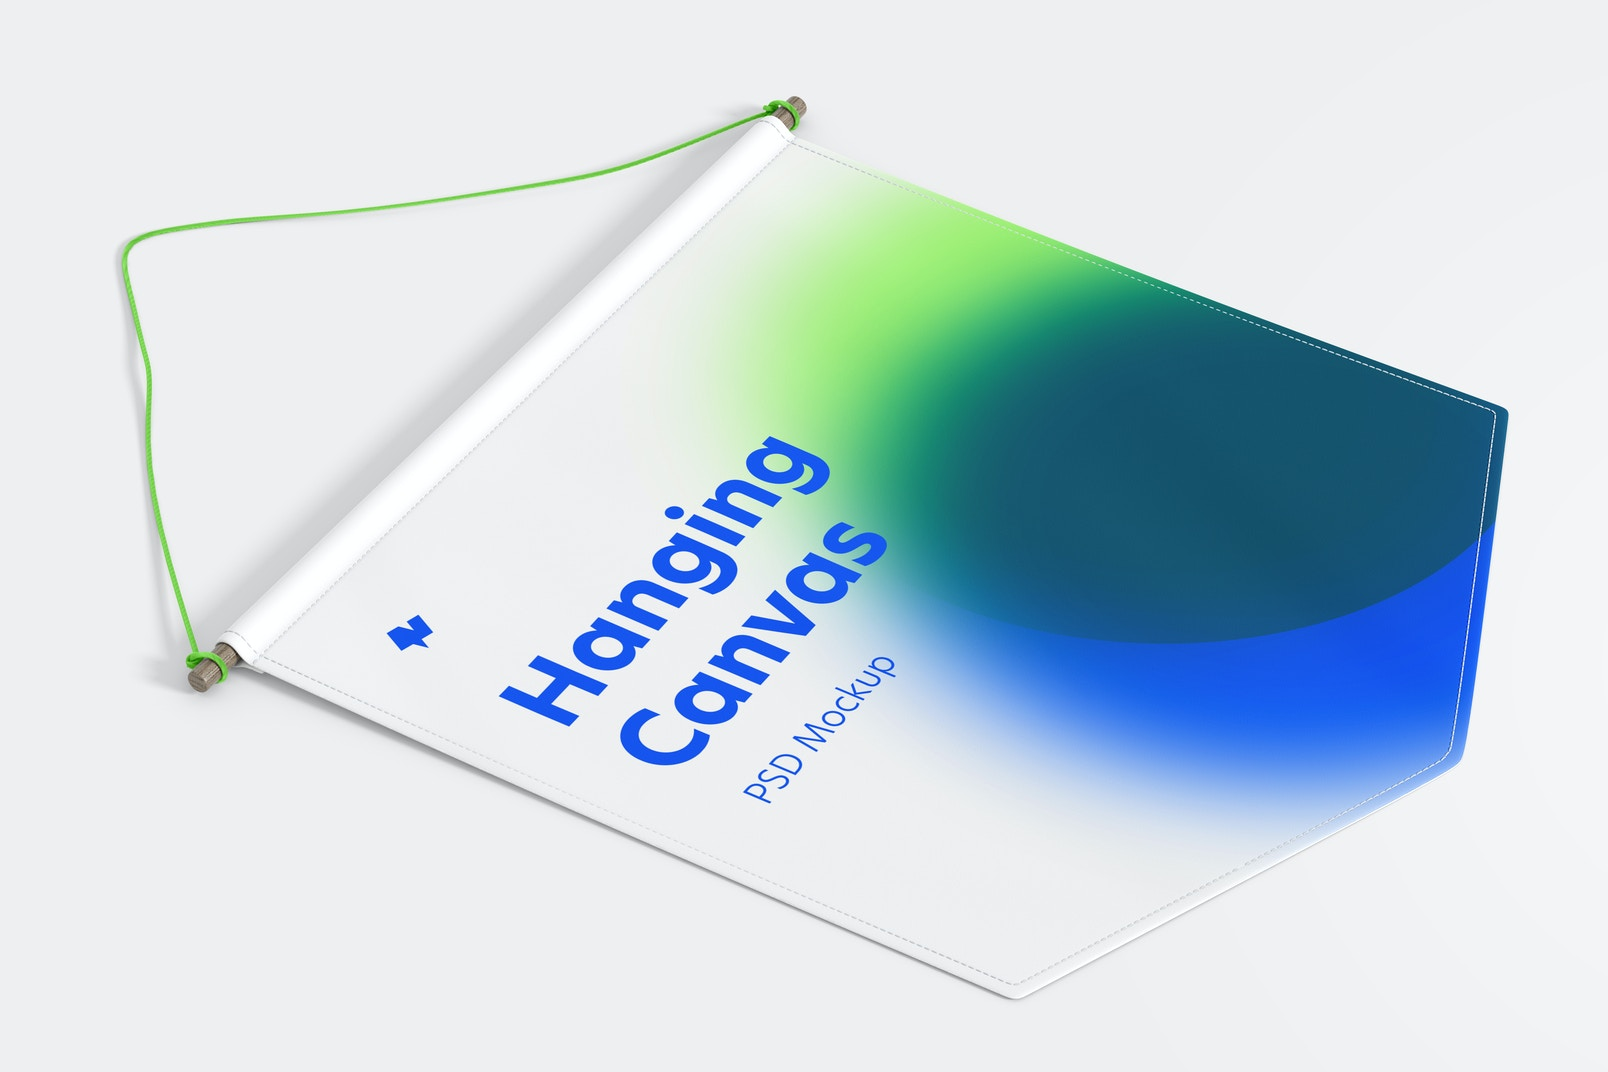 Hanging Canvas Pennant Mockup, Perspective